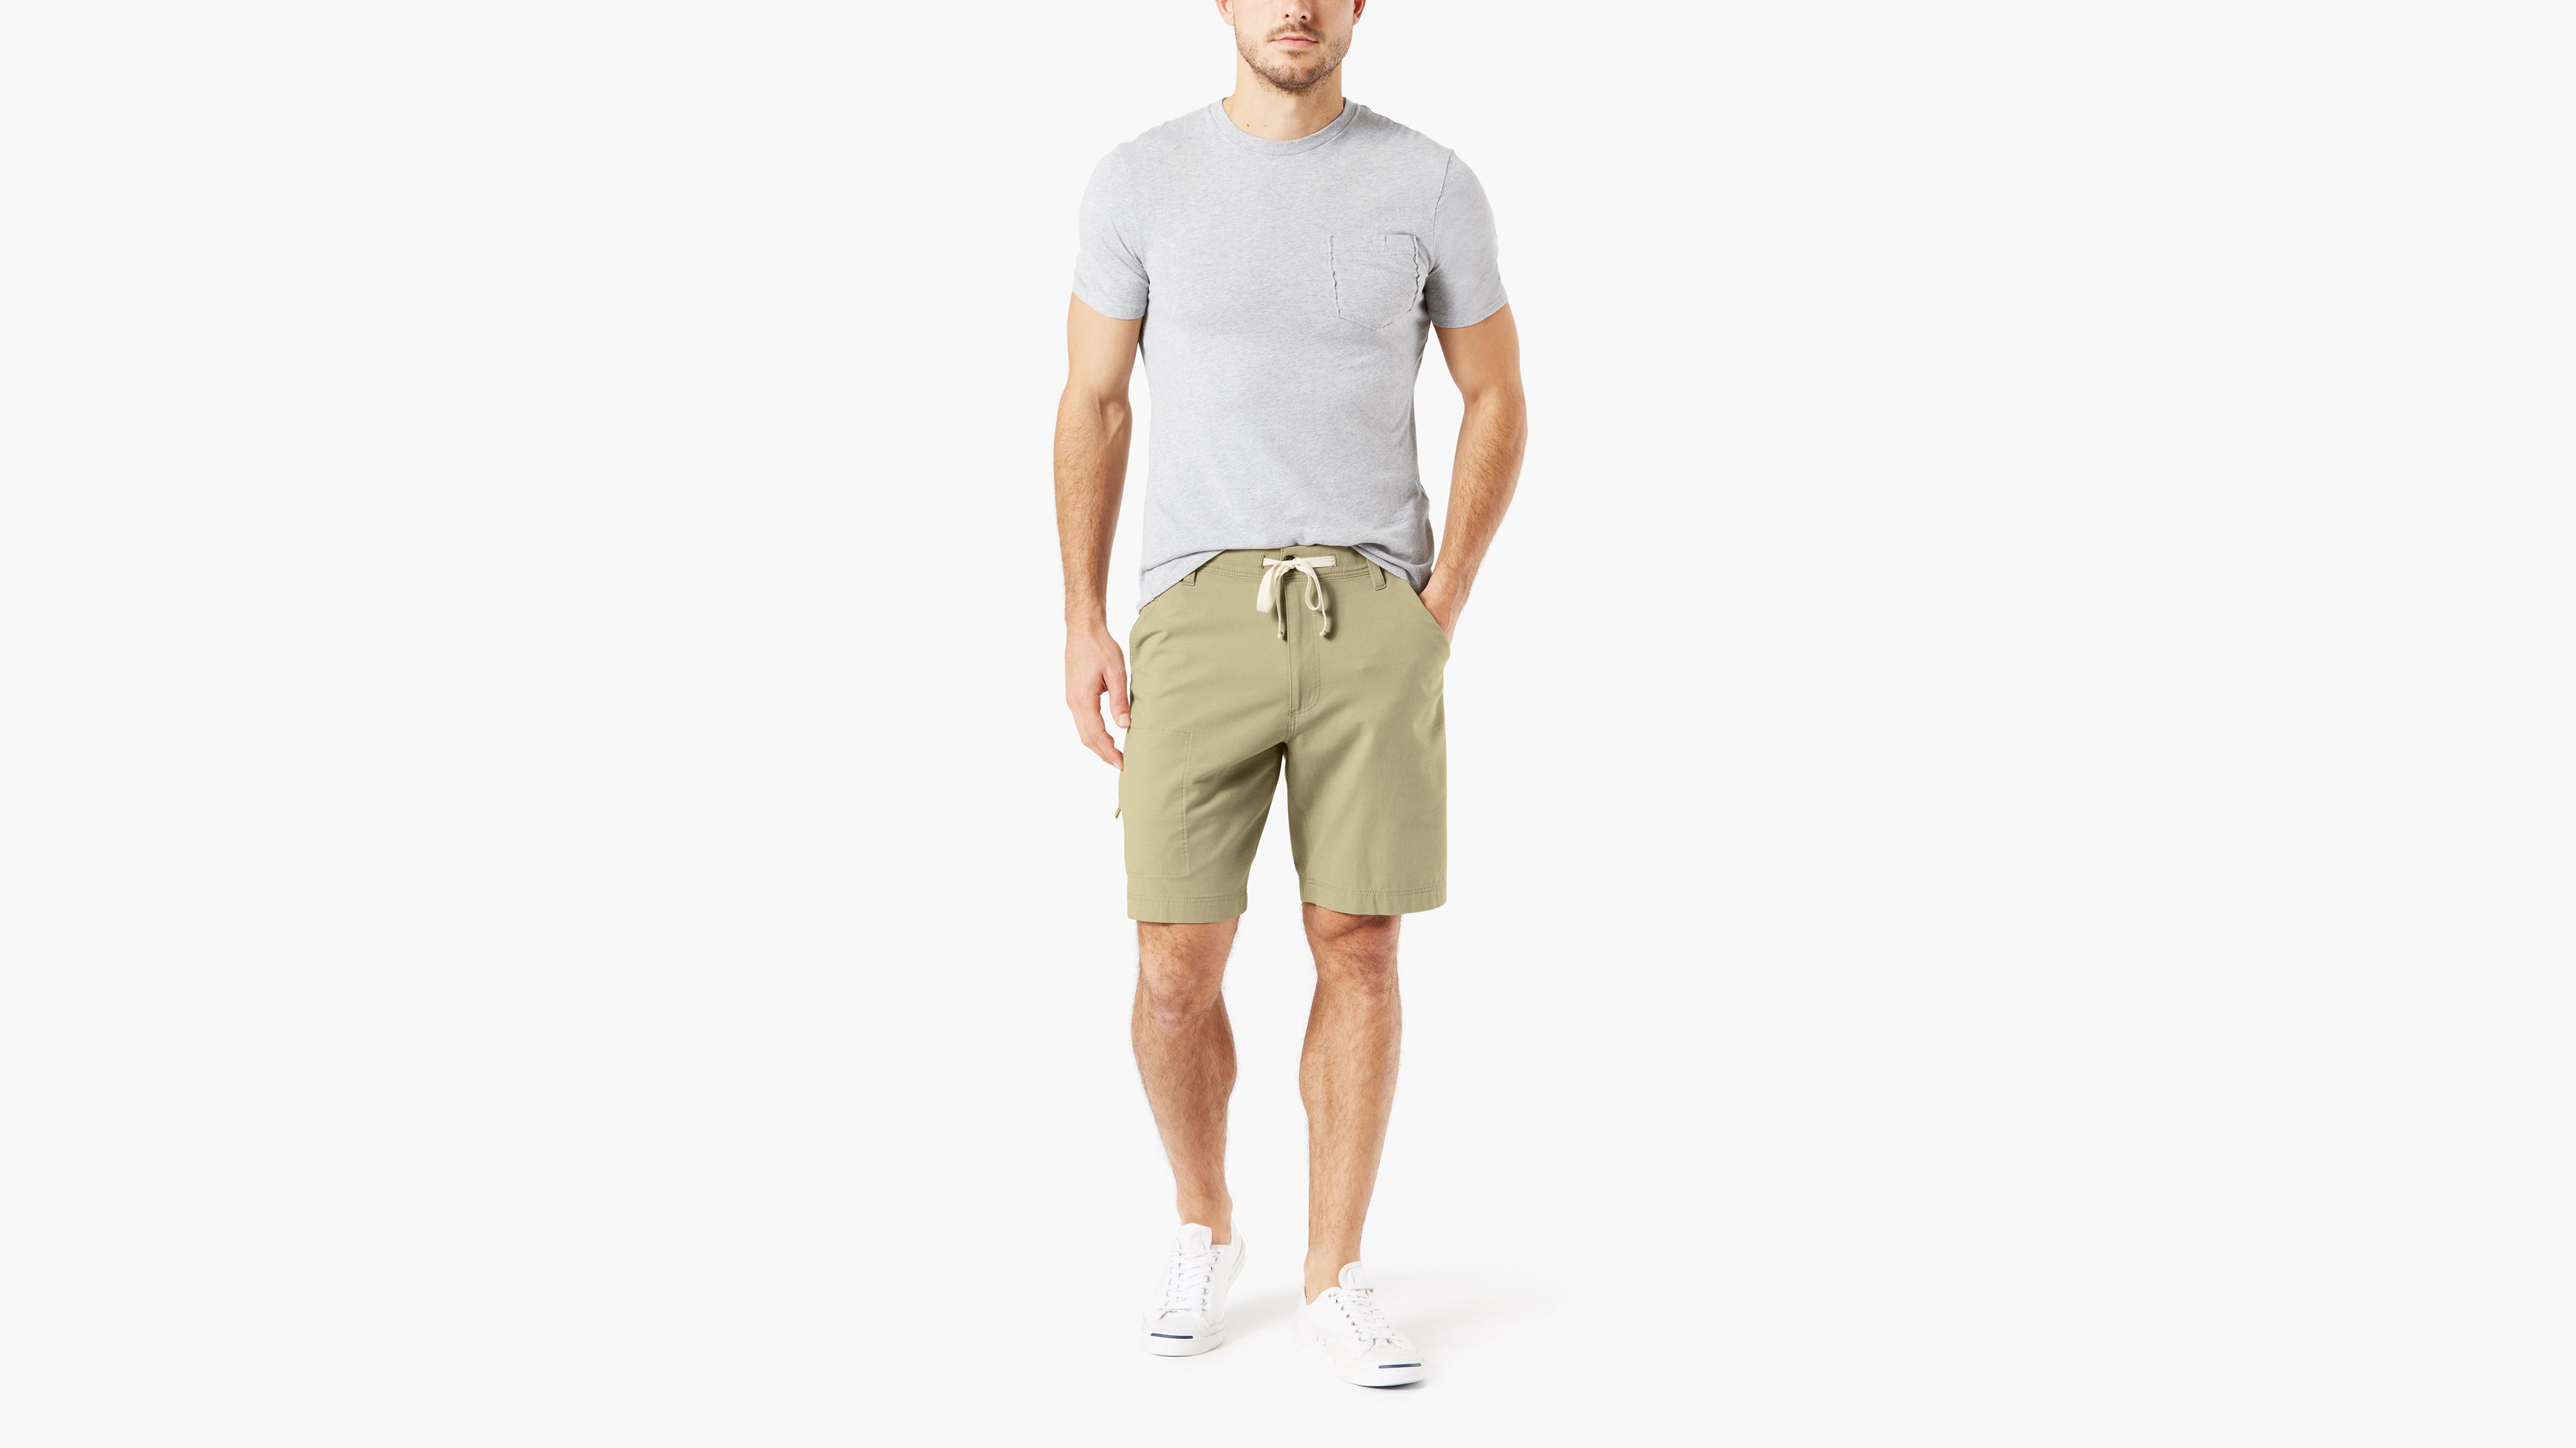 52d72e844861 Utility Shorts With Smart 360 Flex™ Shorts, Straight Fit - Green 798770000  | Dockers® US